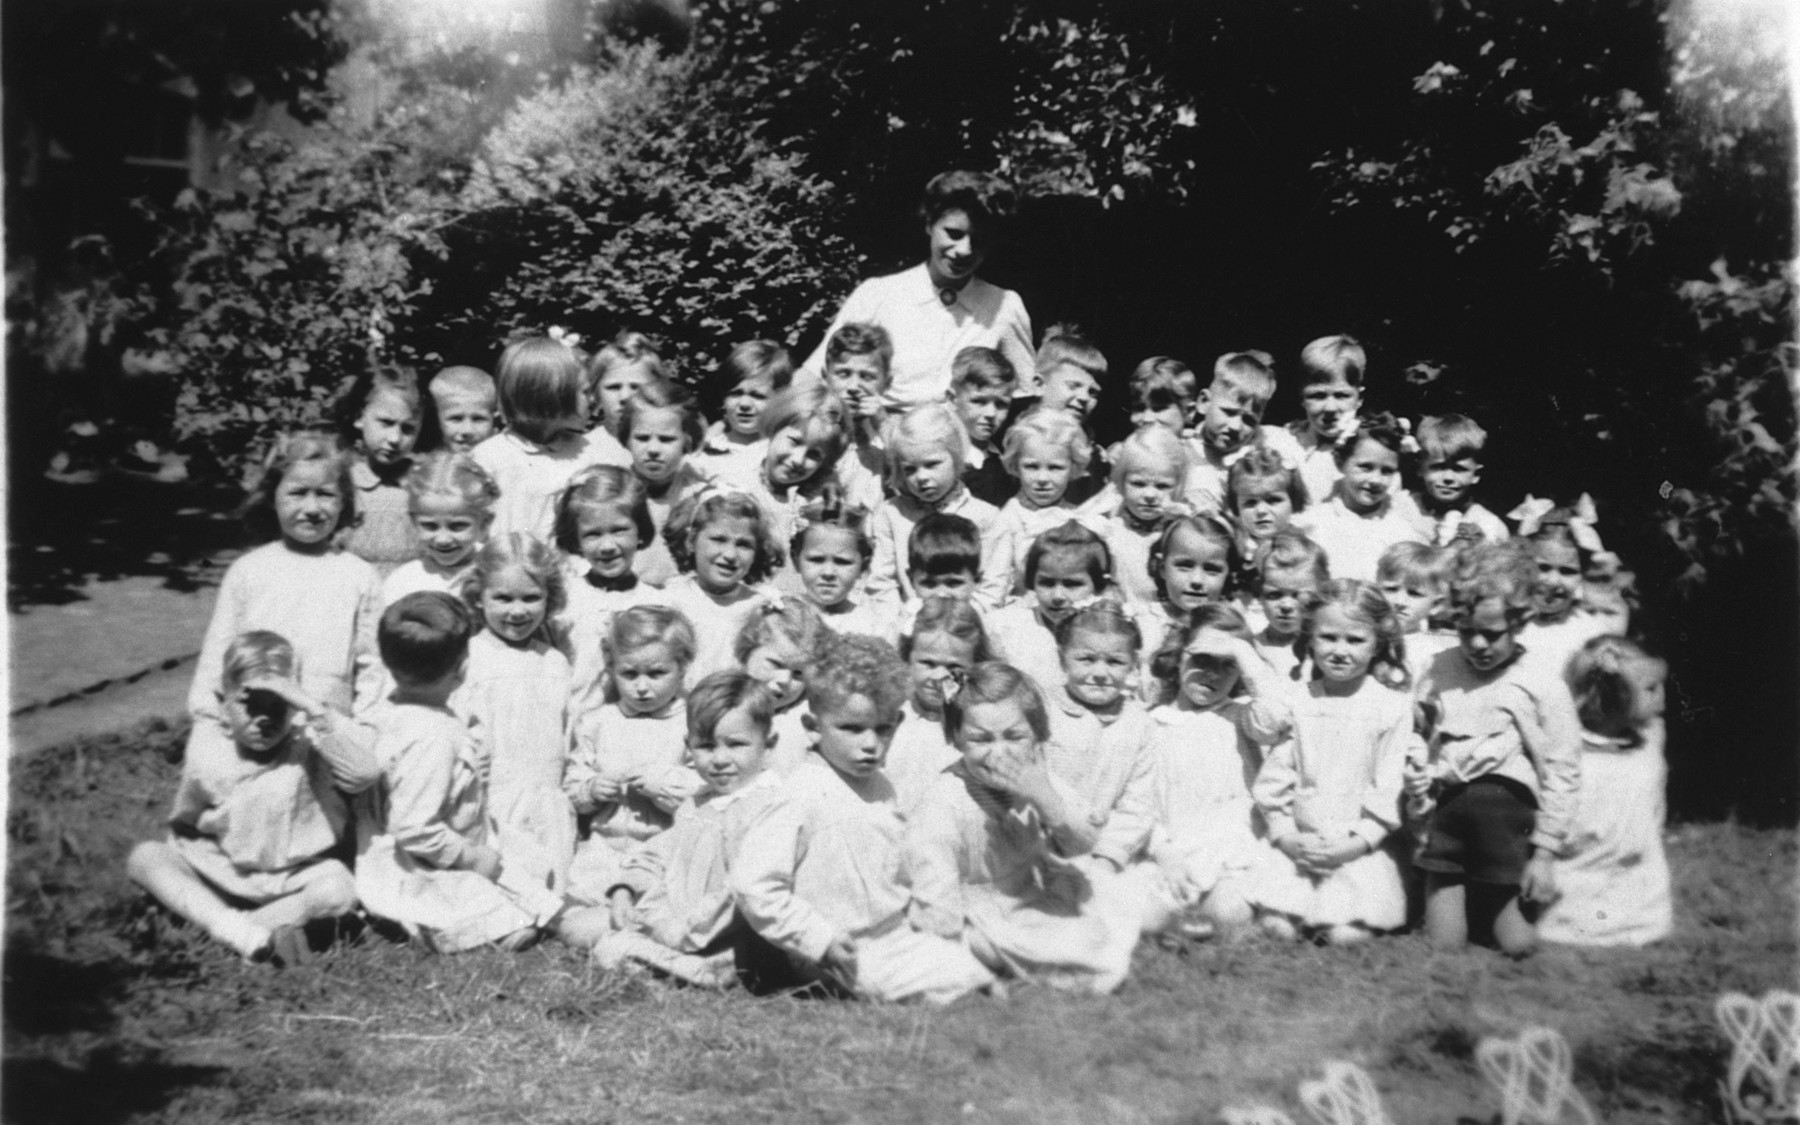 Group photo kindergarteners in a convent school in Belgium.  Among those pictured is a Jewish child survivor from Poland, Jeanine Ament.